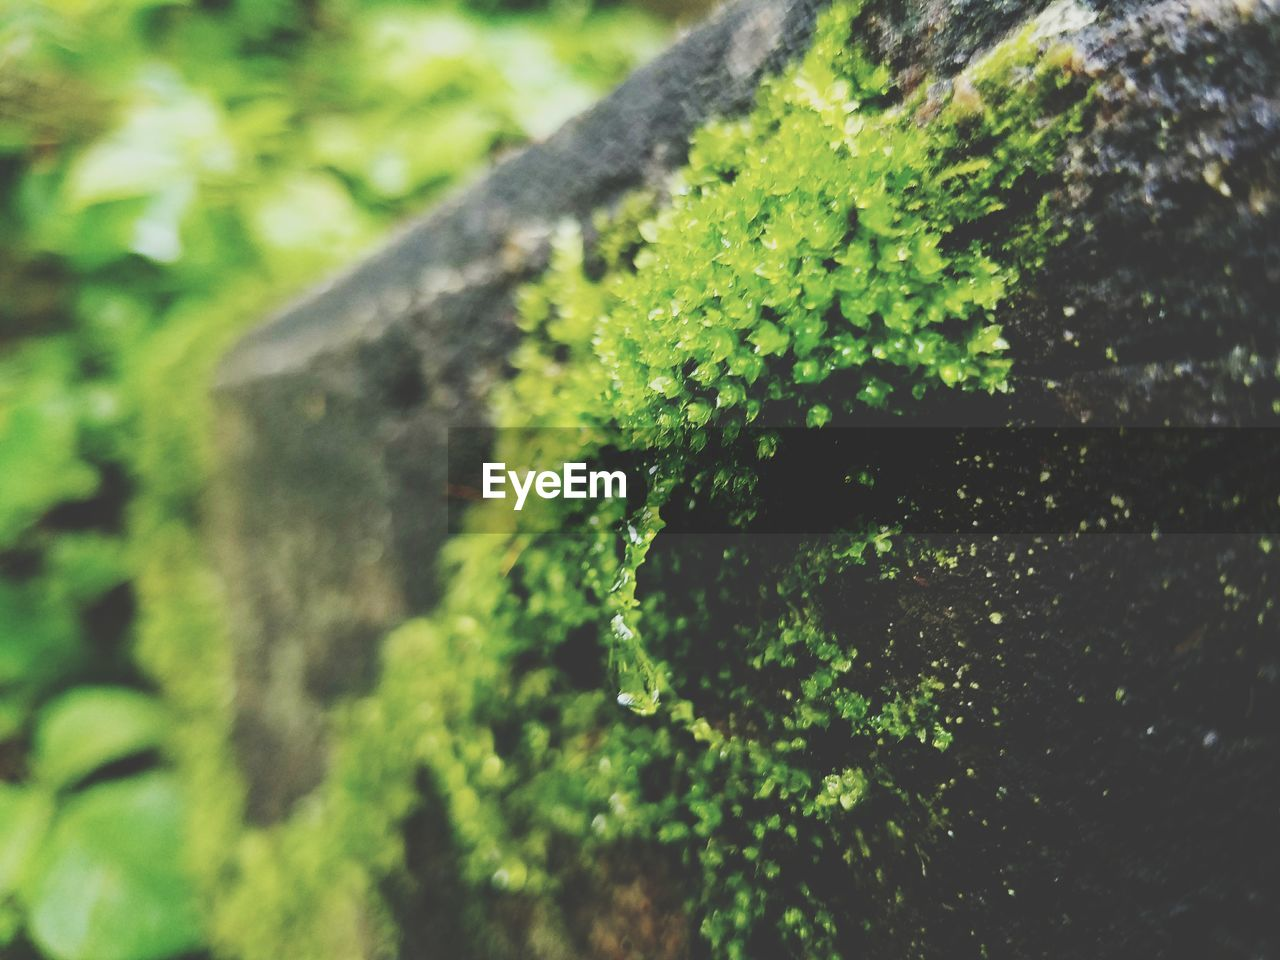 growth, green color, nature, plant, no people, outdoors, day, close-up, tree, focus on foreground, moss, beauty in nature, lichen, fern, freshness